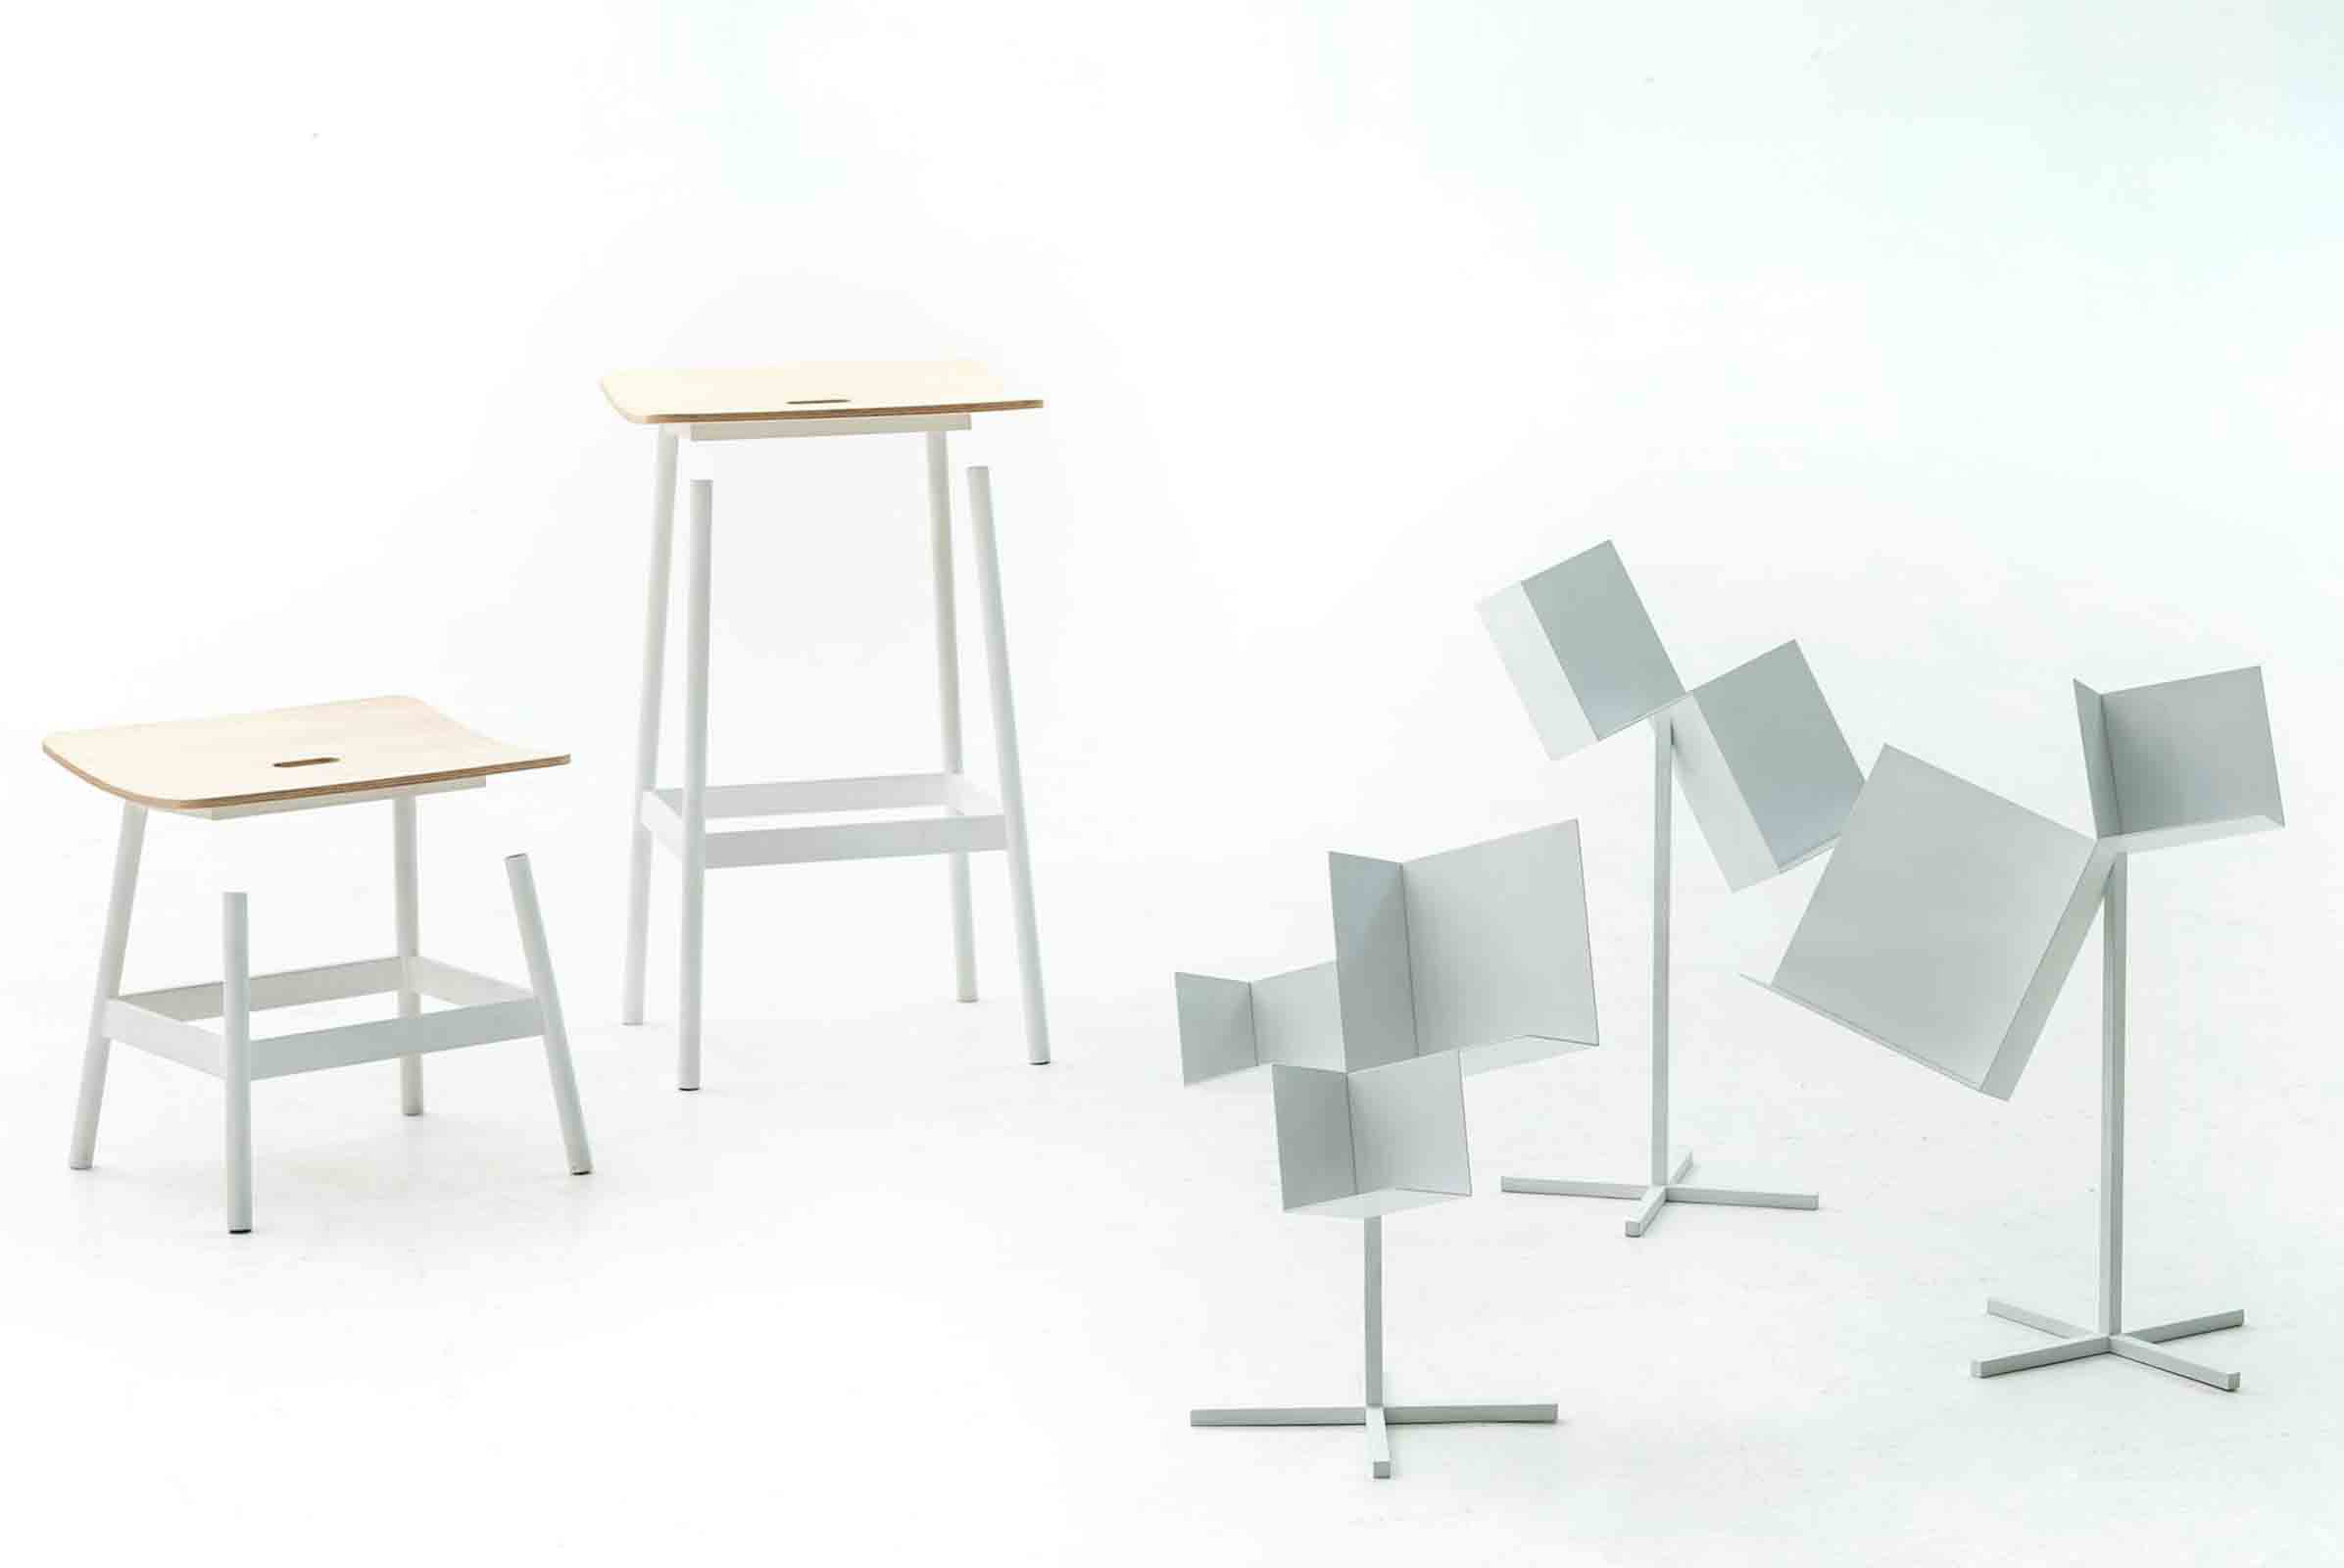 'Float' stools and 'Corners' storage designed by nendo for Moroso